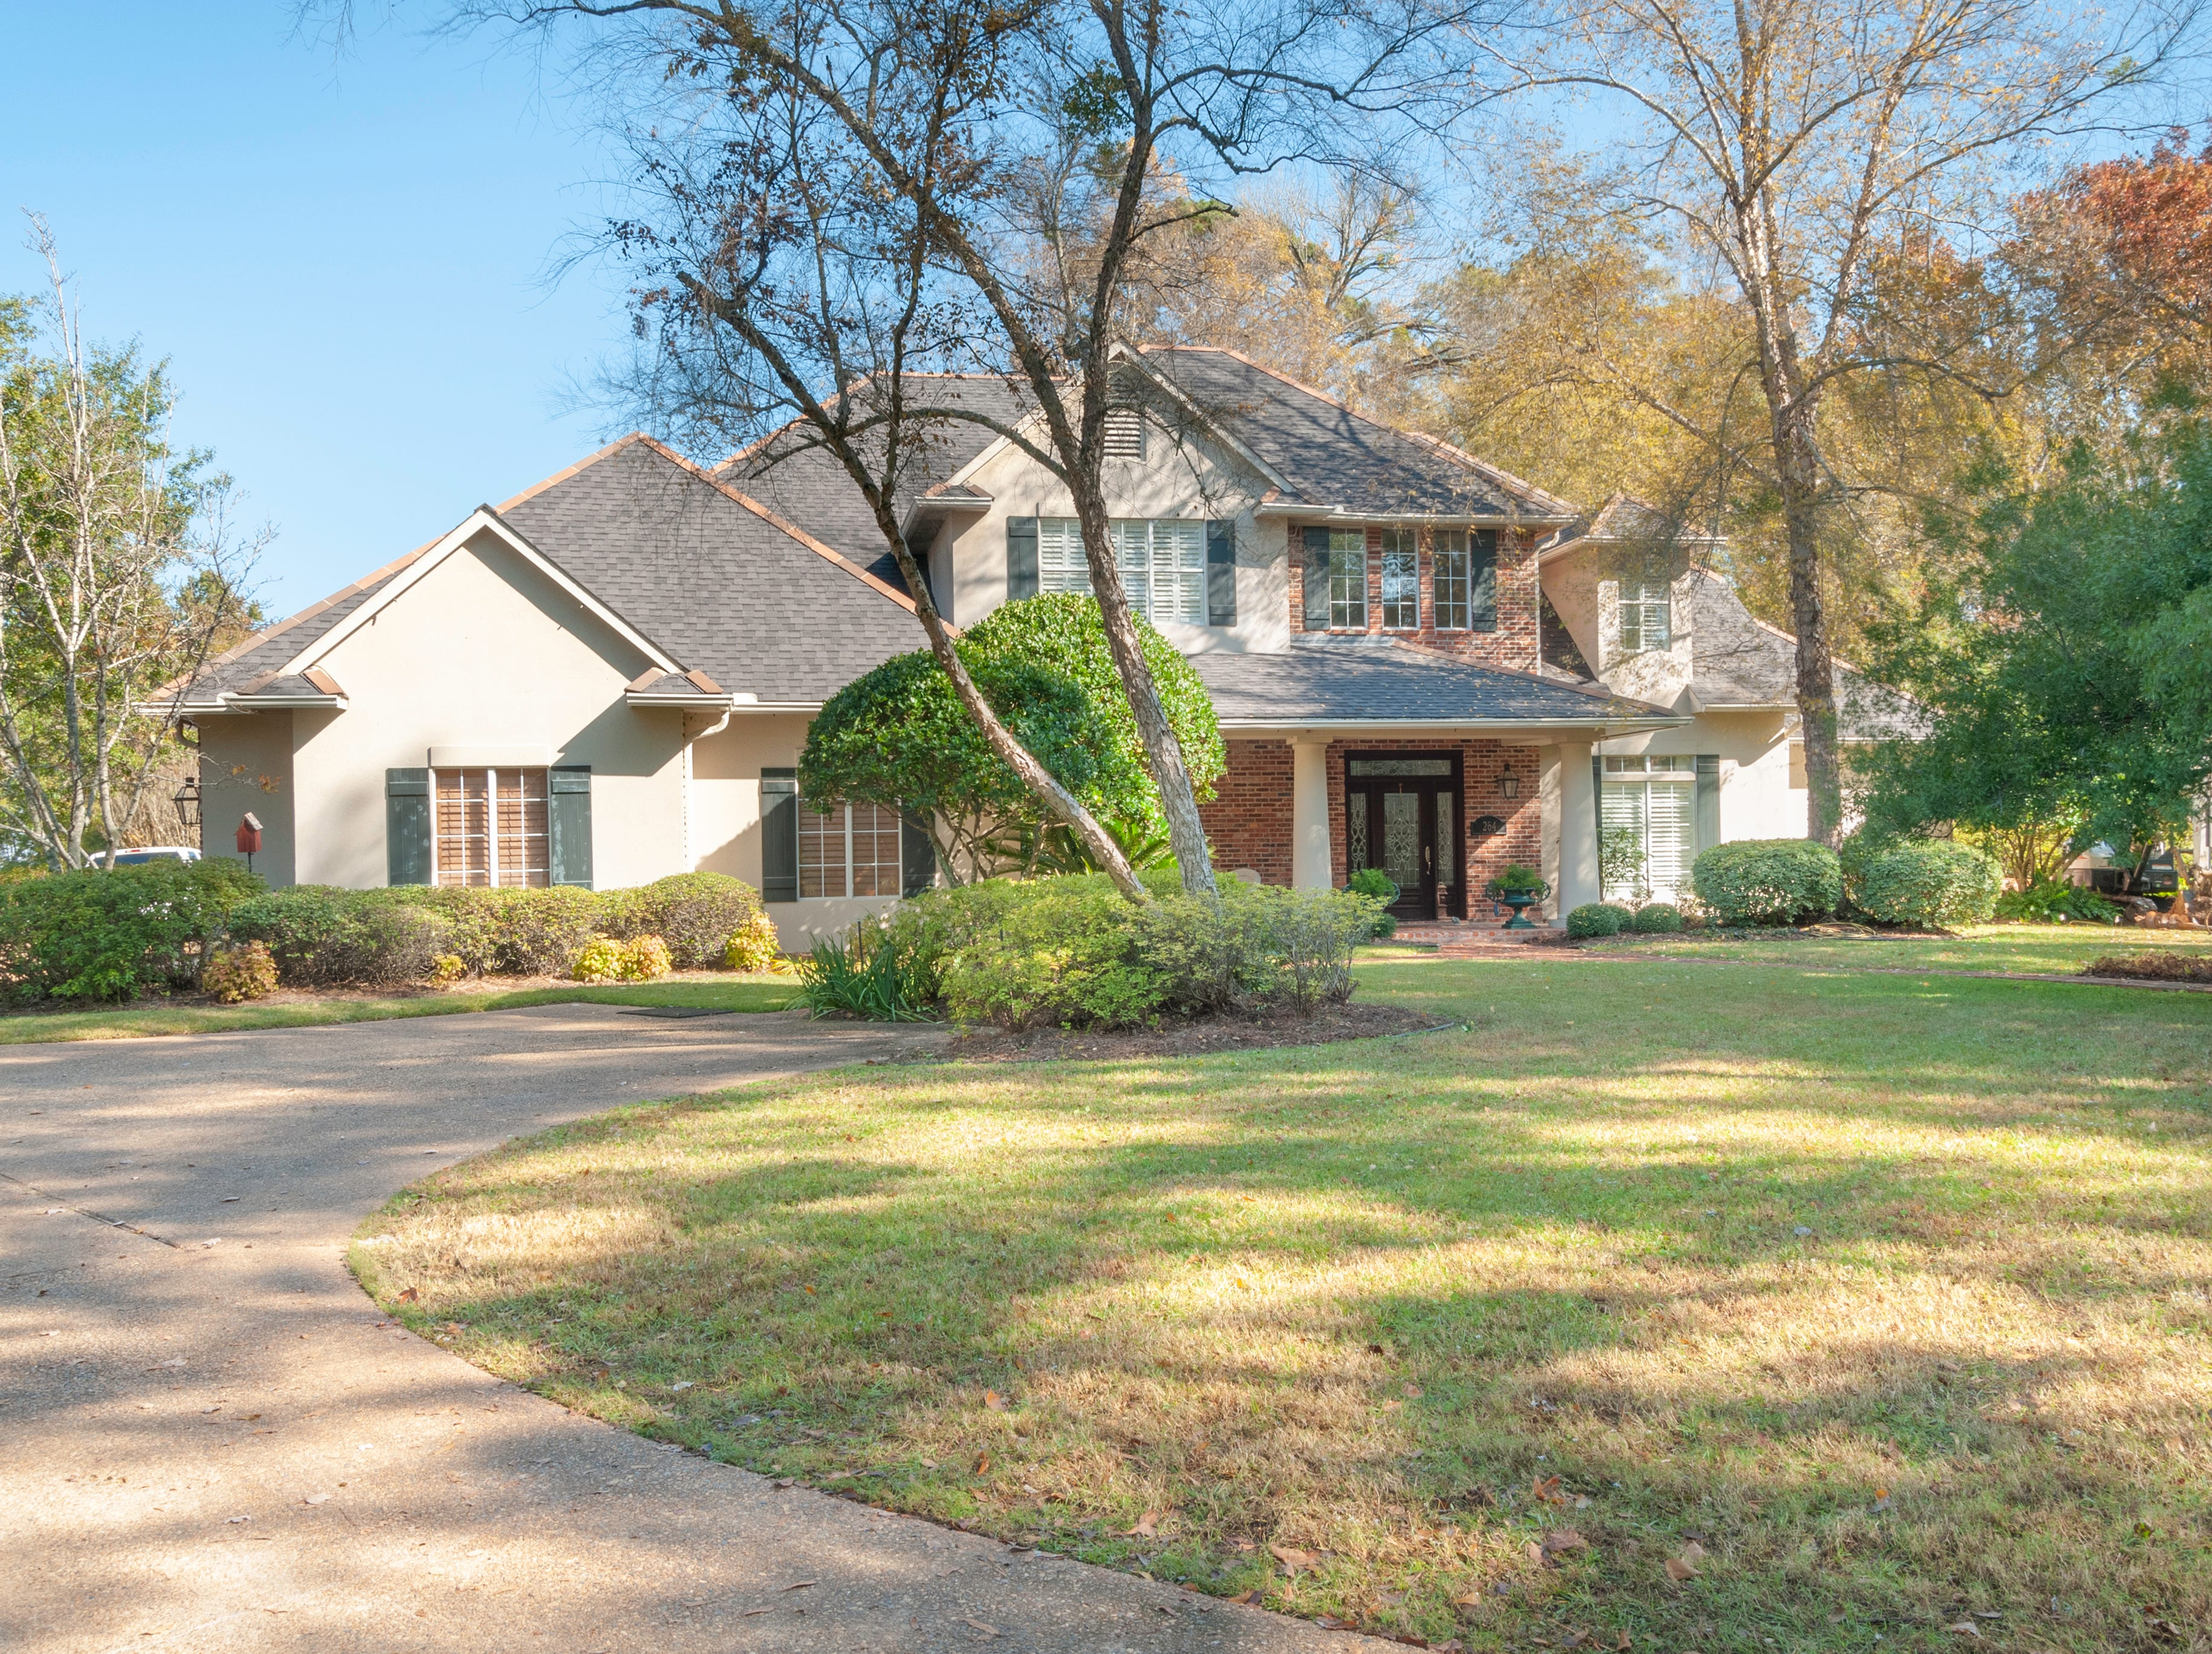 264 Golf Ridge Drive,   Shreveport  Price: $825,000  Details: 4 bedrooms, 5 bathrooms, 5,024 square feet  Special features: Golf course living on 1 acre with private pool and hot tub, outdoor kitchen, cook's kitchen with sub-zero refrigerator, 10 foot ceilings downstairs, 2 fireplaces, beautiful wooden room perfect for a music room or library.   Contact: Carolyn Mills, 458-2945